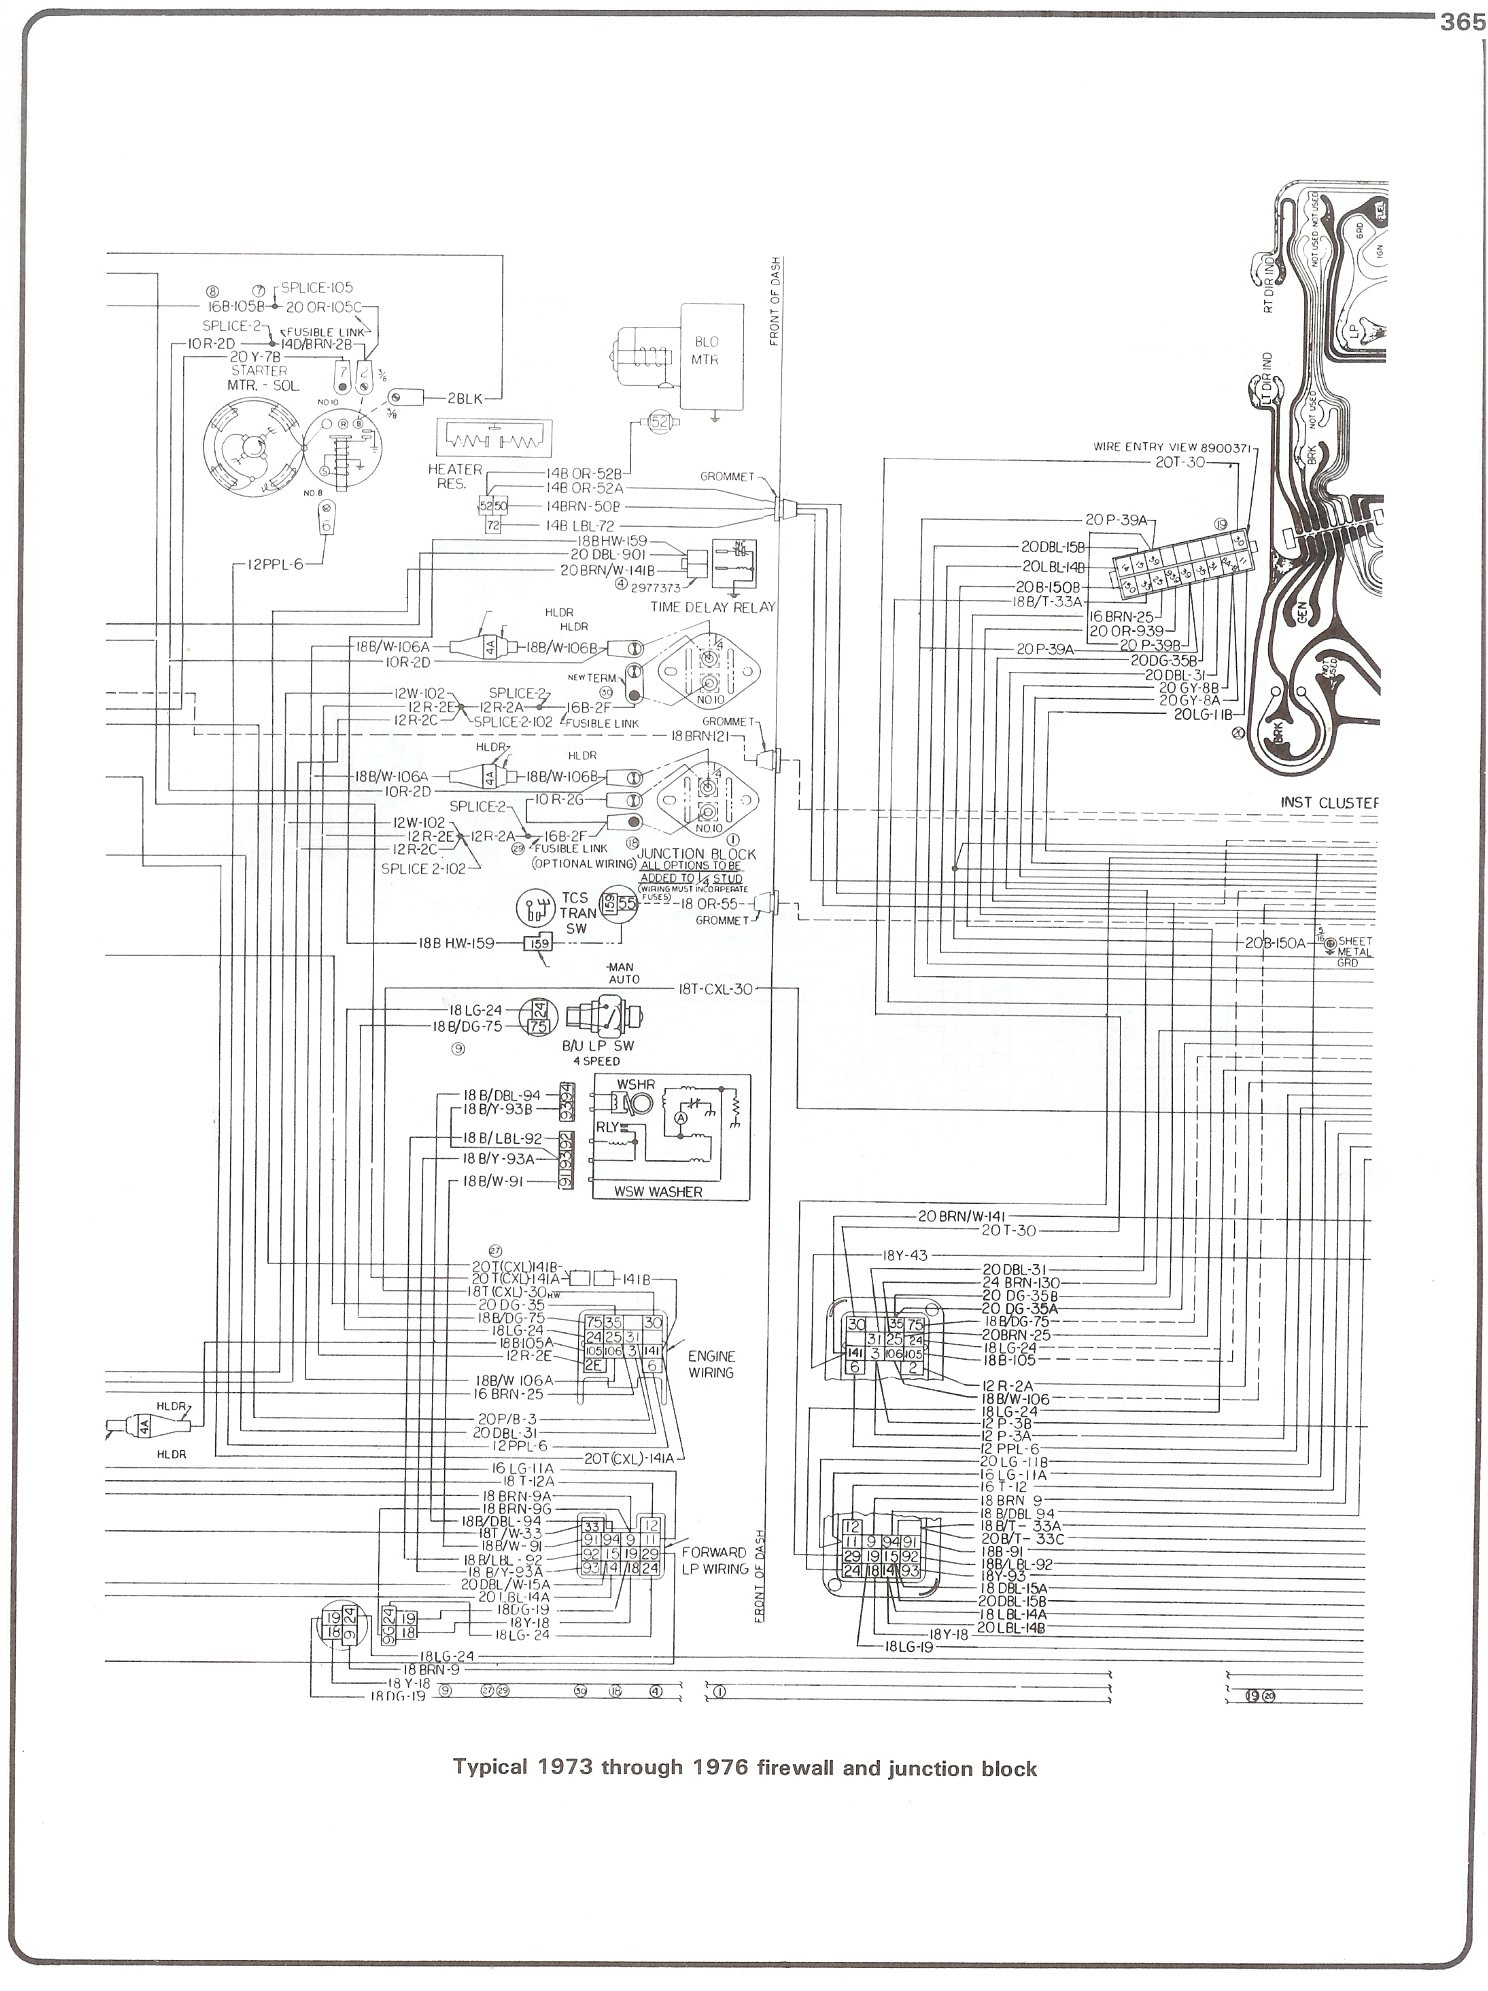 73 76_firewall_junct complete 73 87 wiring diagrams 1984 chevy truck ignition wiring diagram at soozxer.org